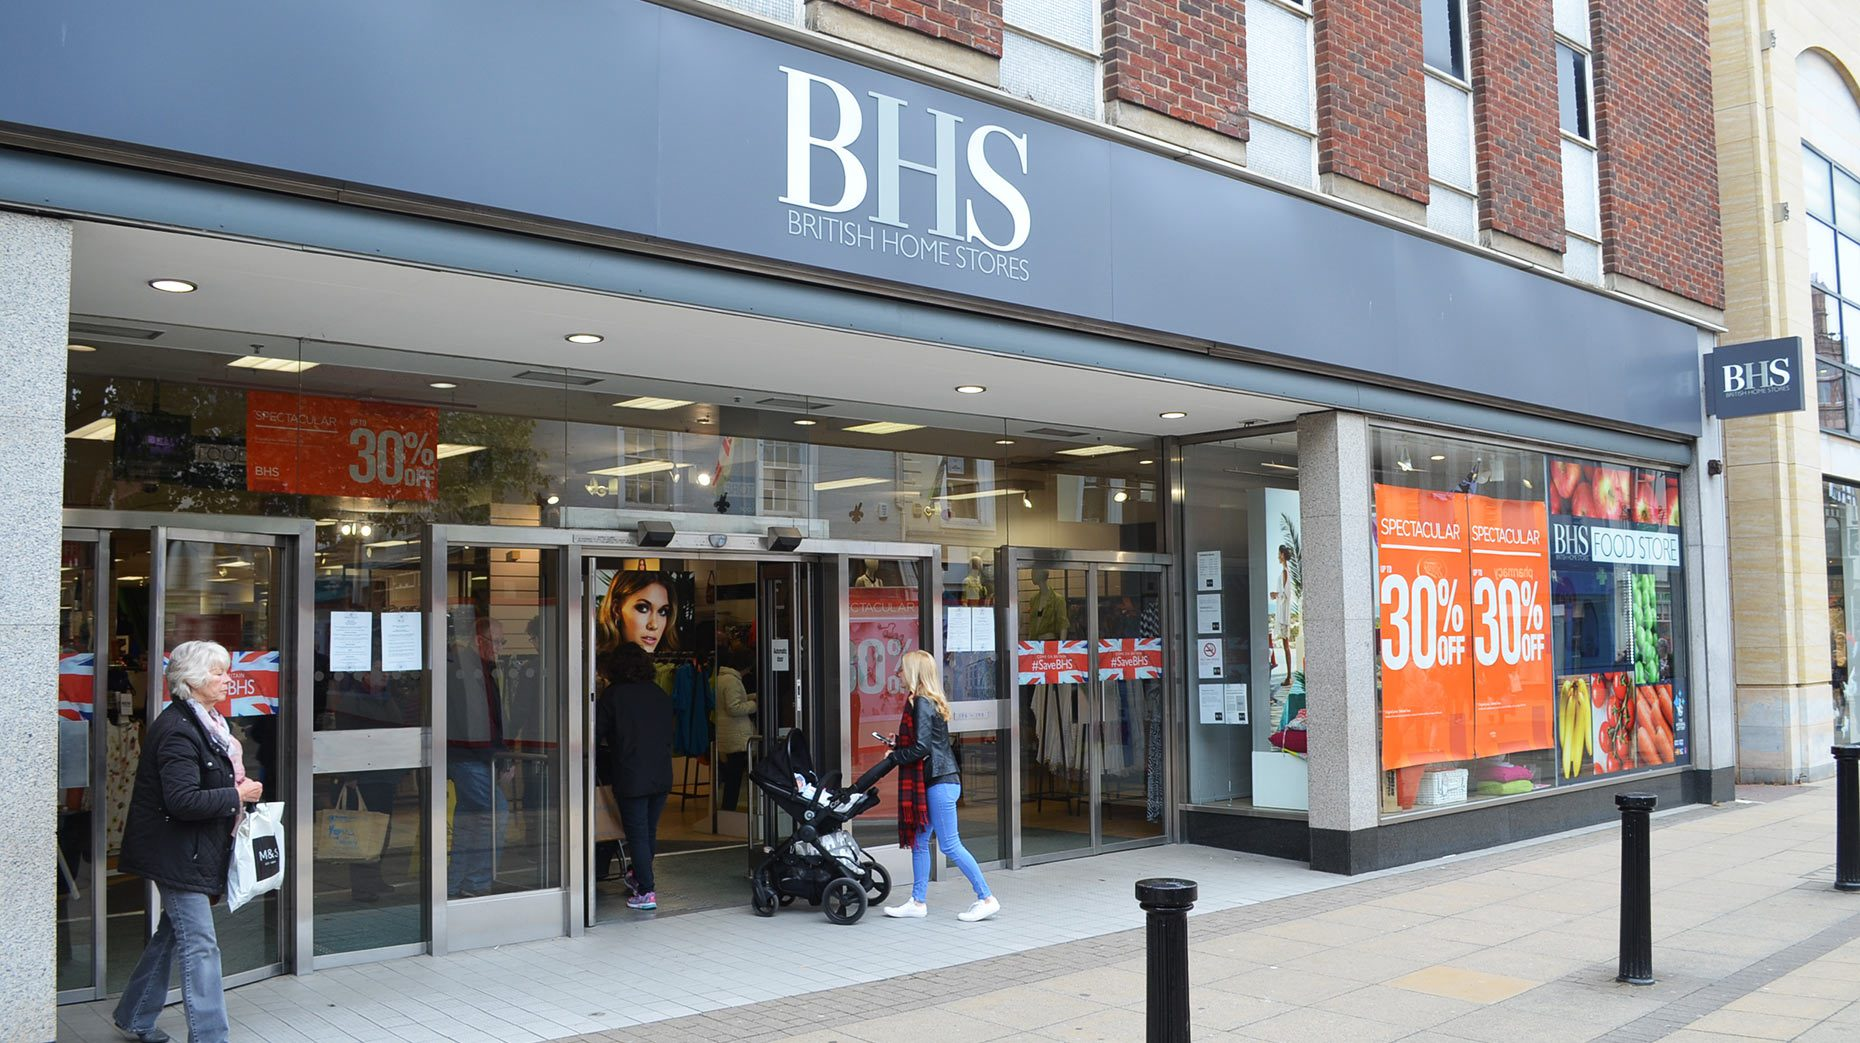 BHS on Lincoln High Street. Photo: Lincolnshire Reporter